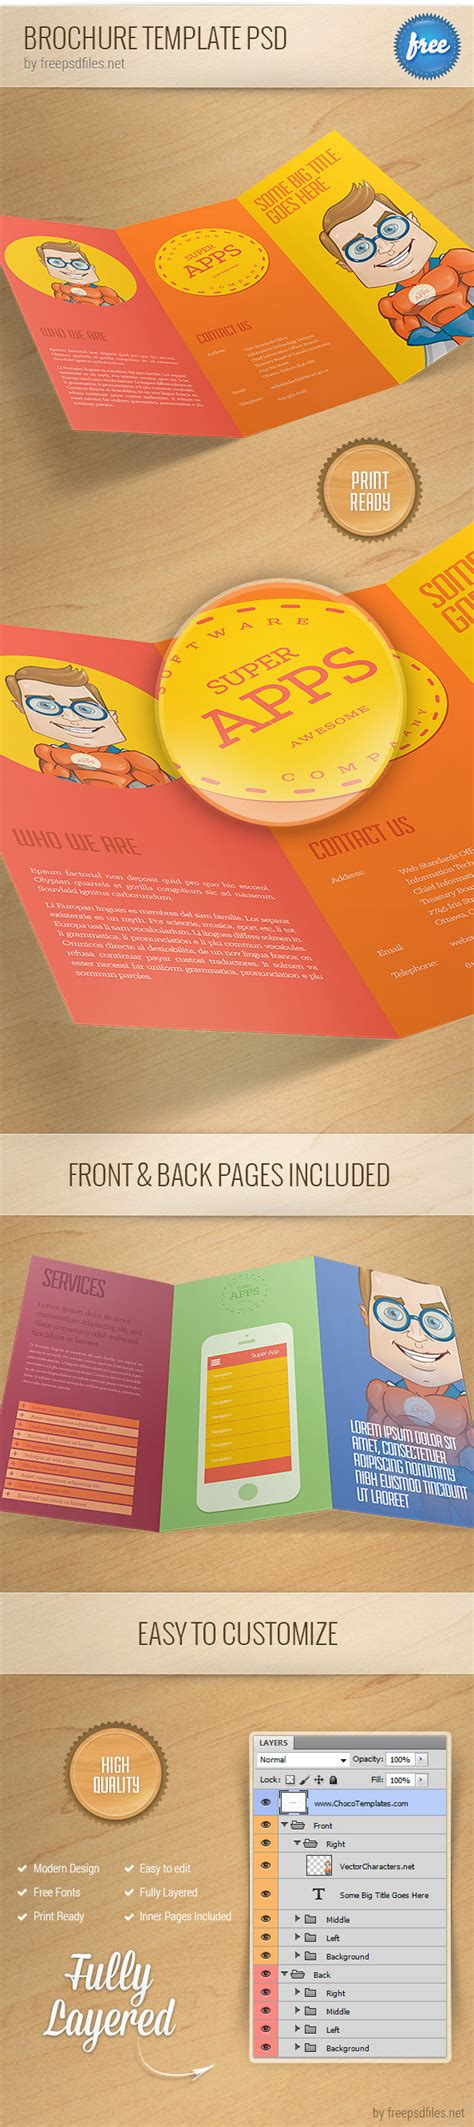 Psd Brochure Template by 25 Best Free Psd Brochure Templates Free Psd Templates